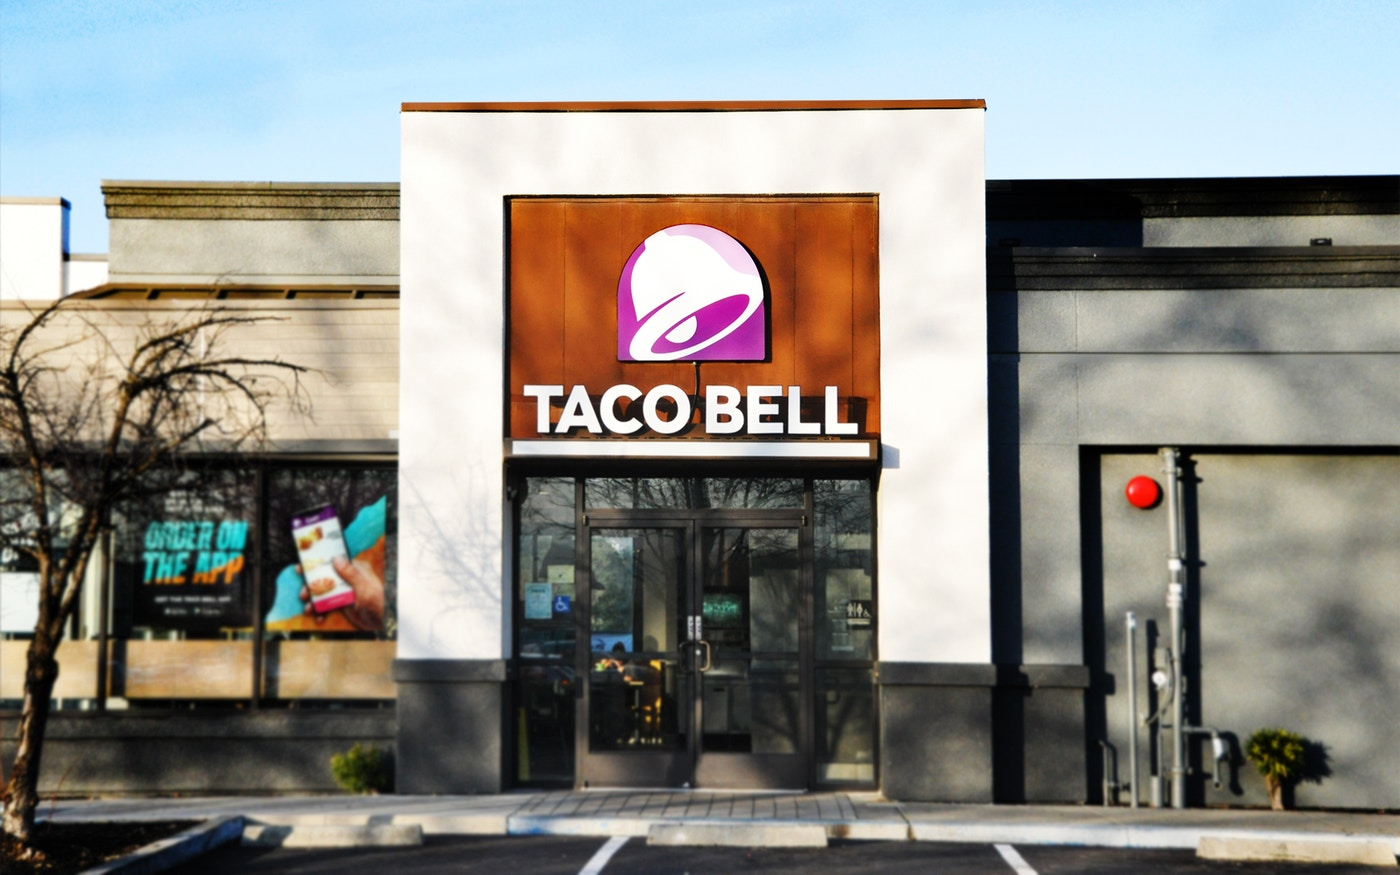 Taco Bell new storefront